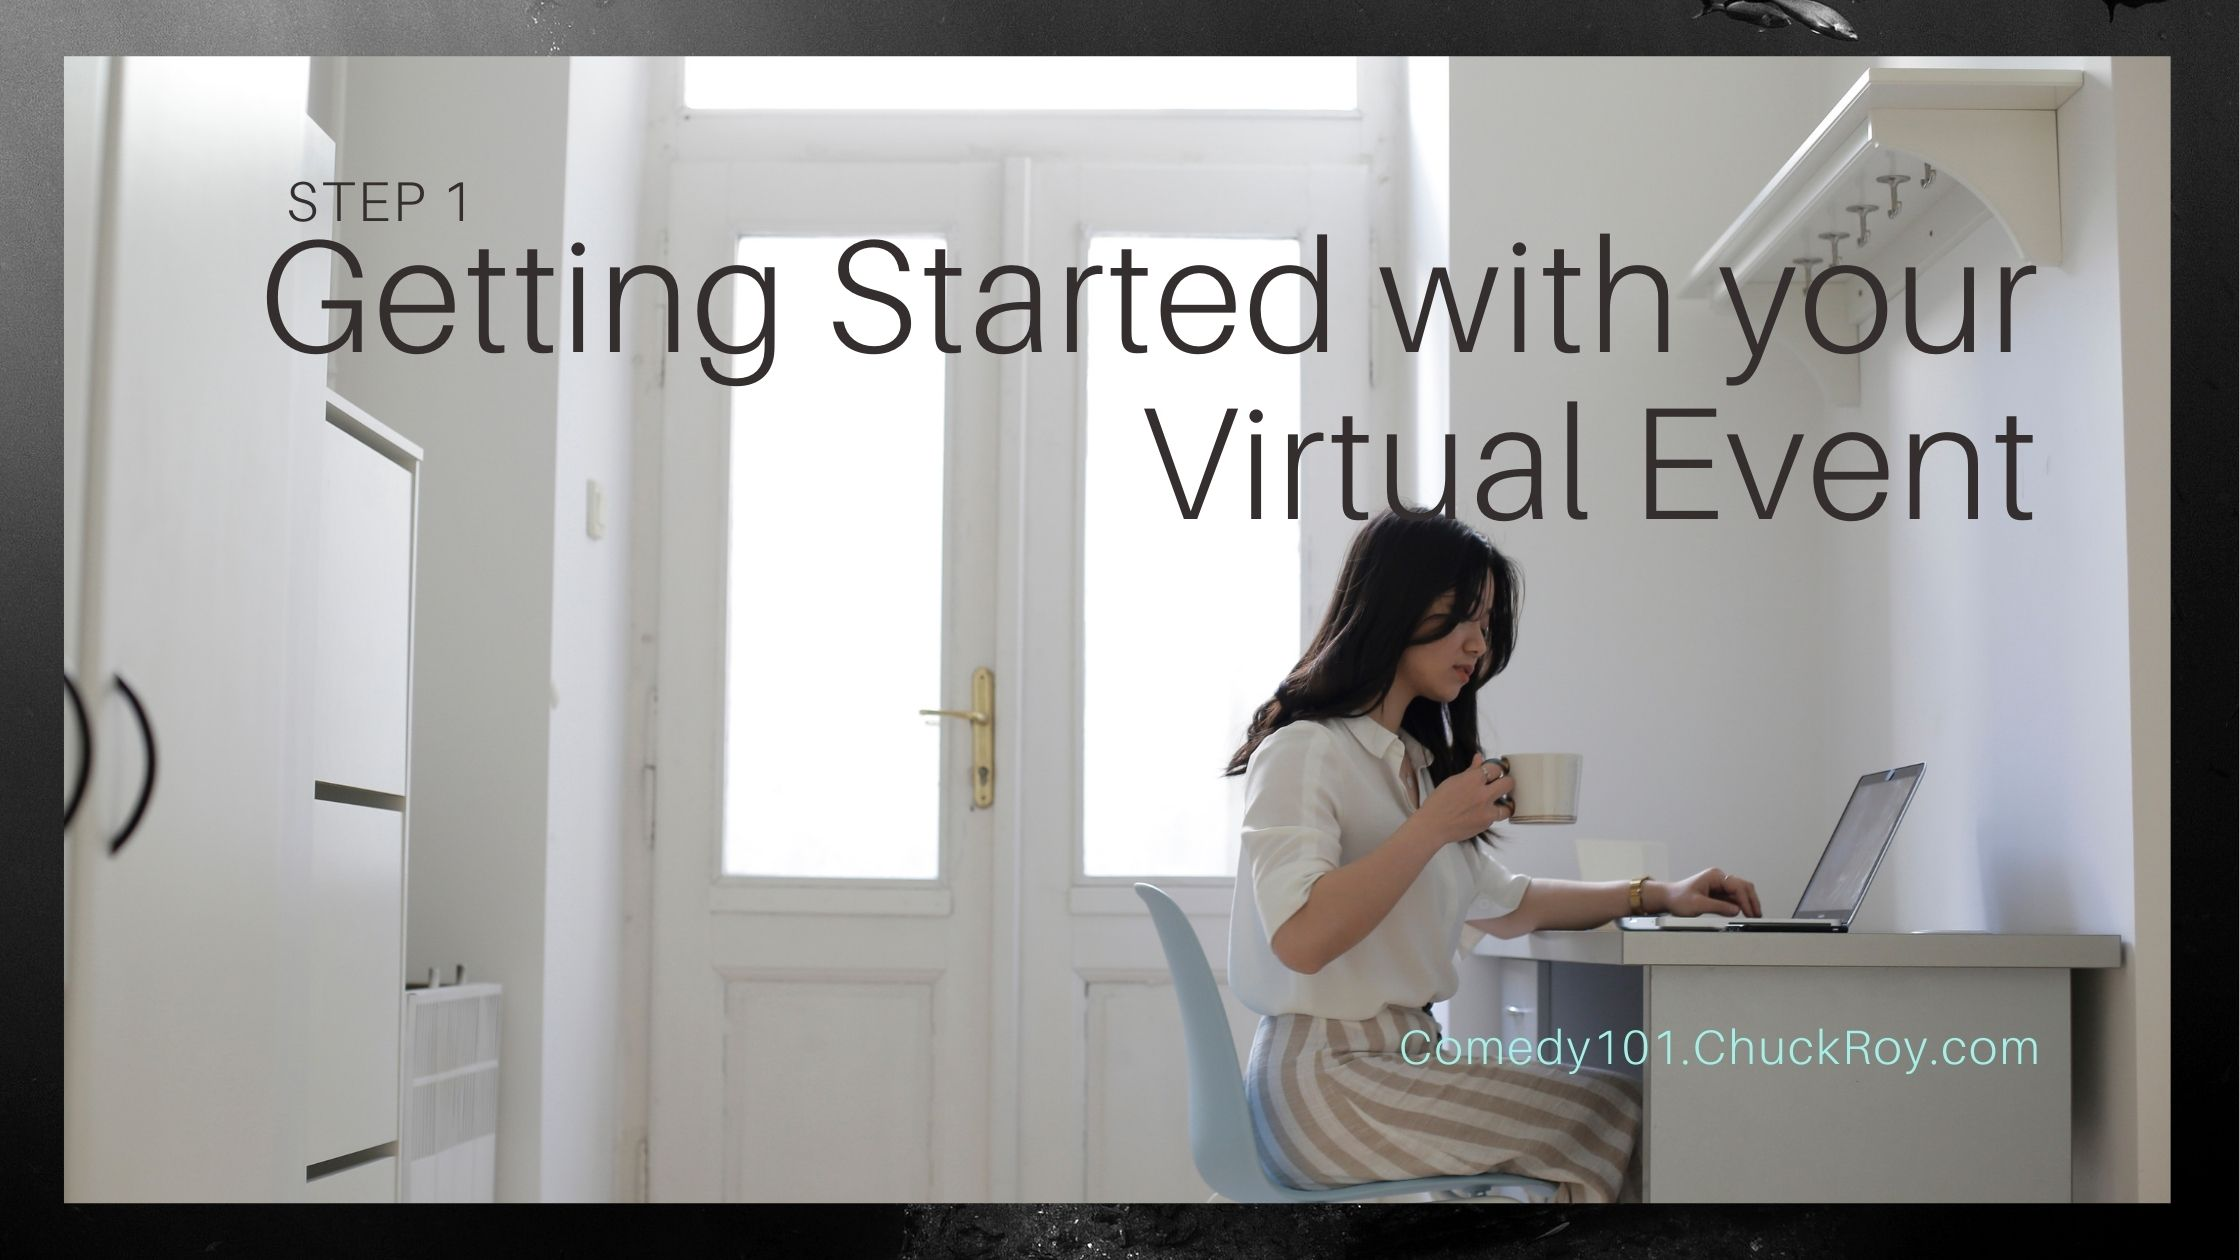 STEP 1 Getting Started with your Virtual Event